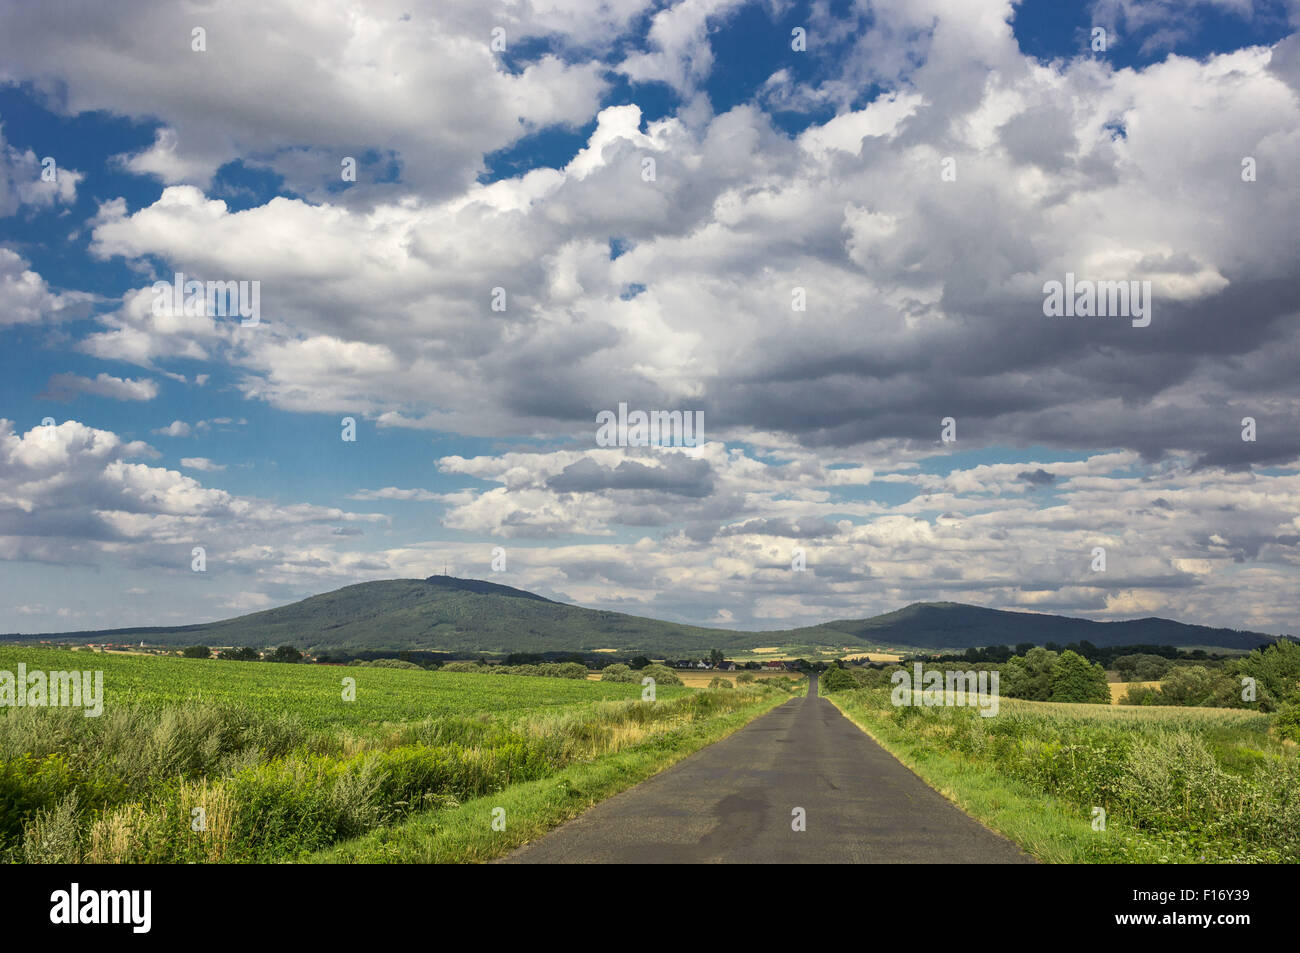 Dramatic grey white cumulonimbus clouds in the sky over Mount Sleza Lower Silesia Poland - Stock Image